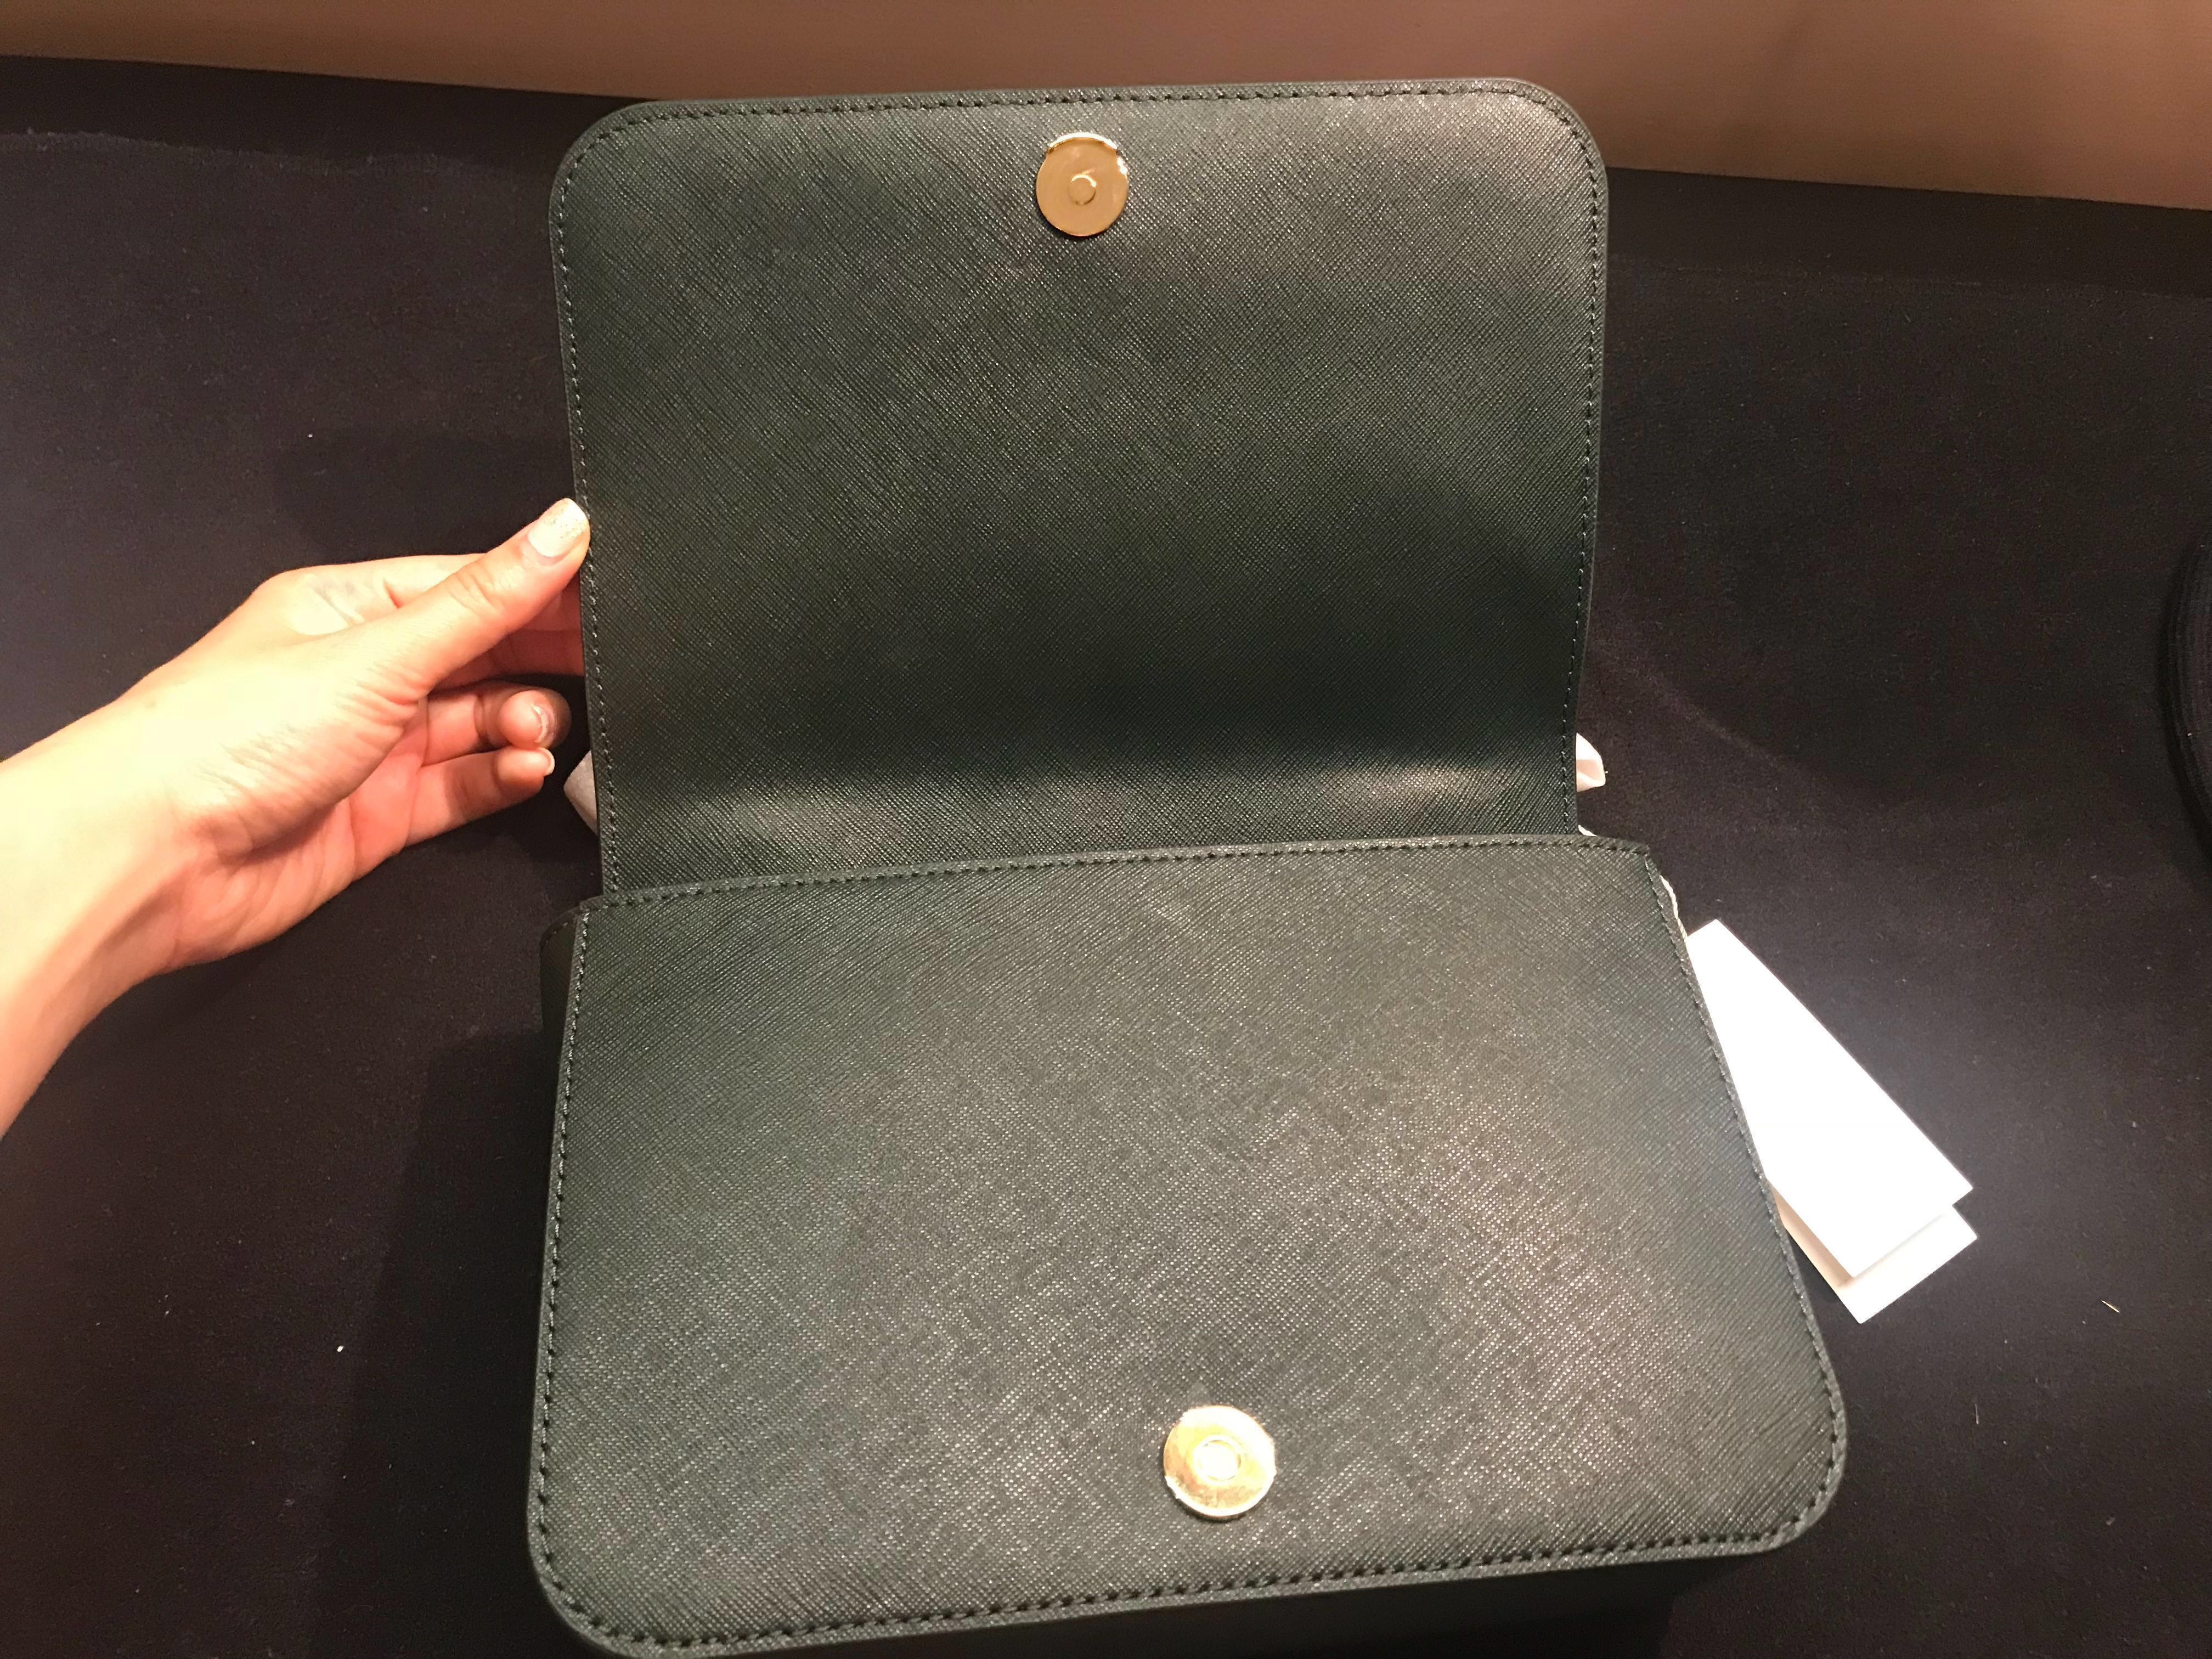 ecce13d33fcc Tory Burch Emerson Adjustable Shoulder Bag in Jitney Green